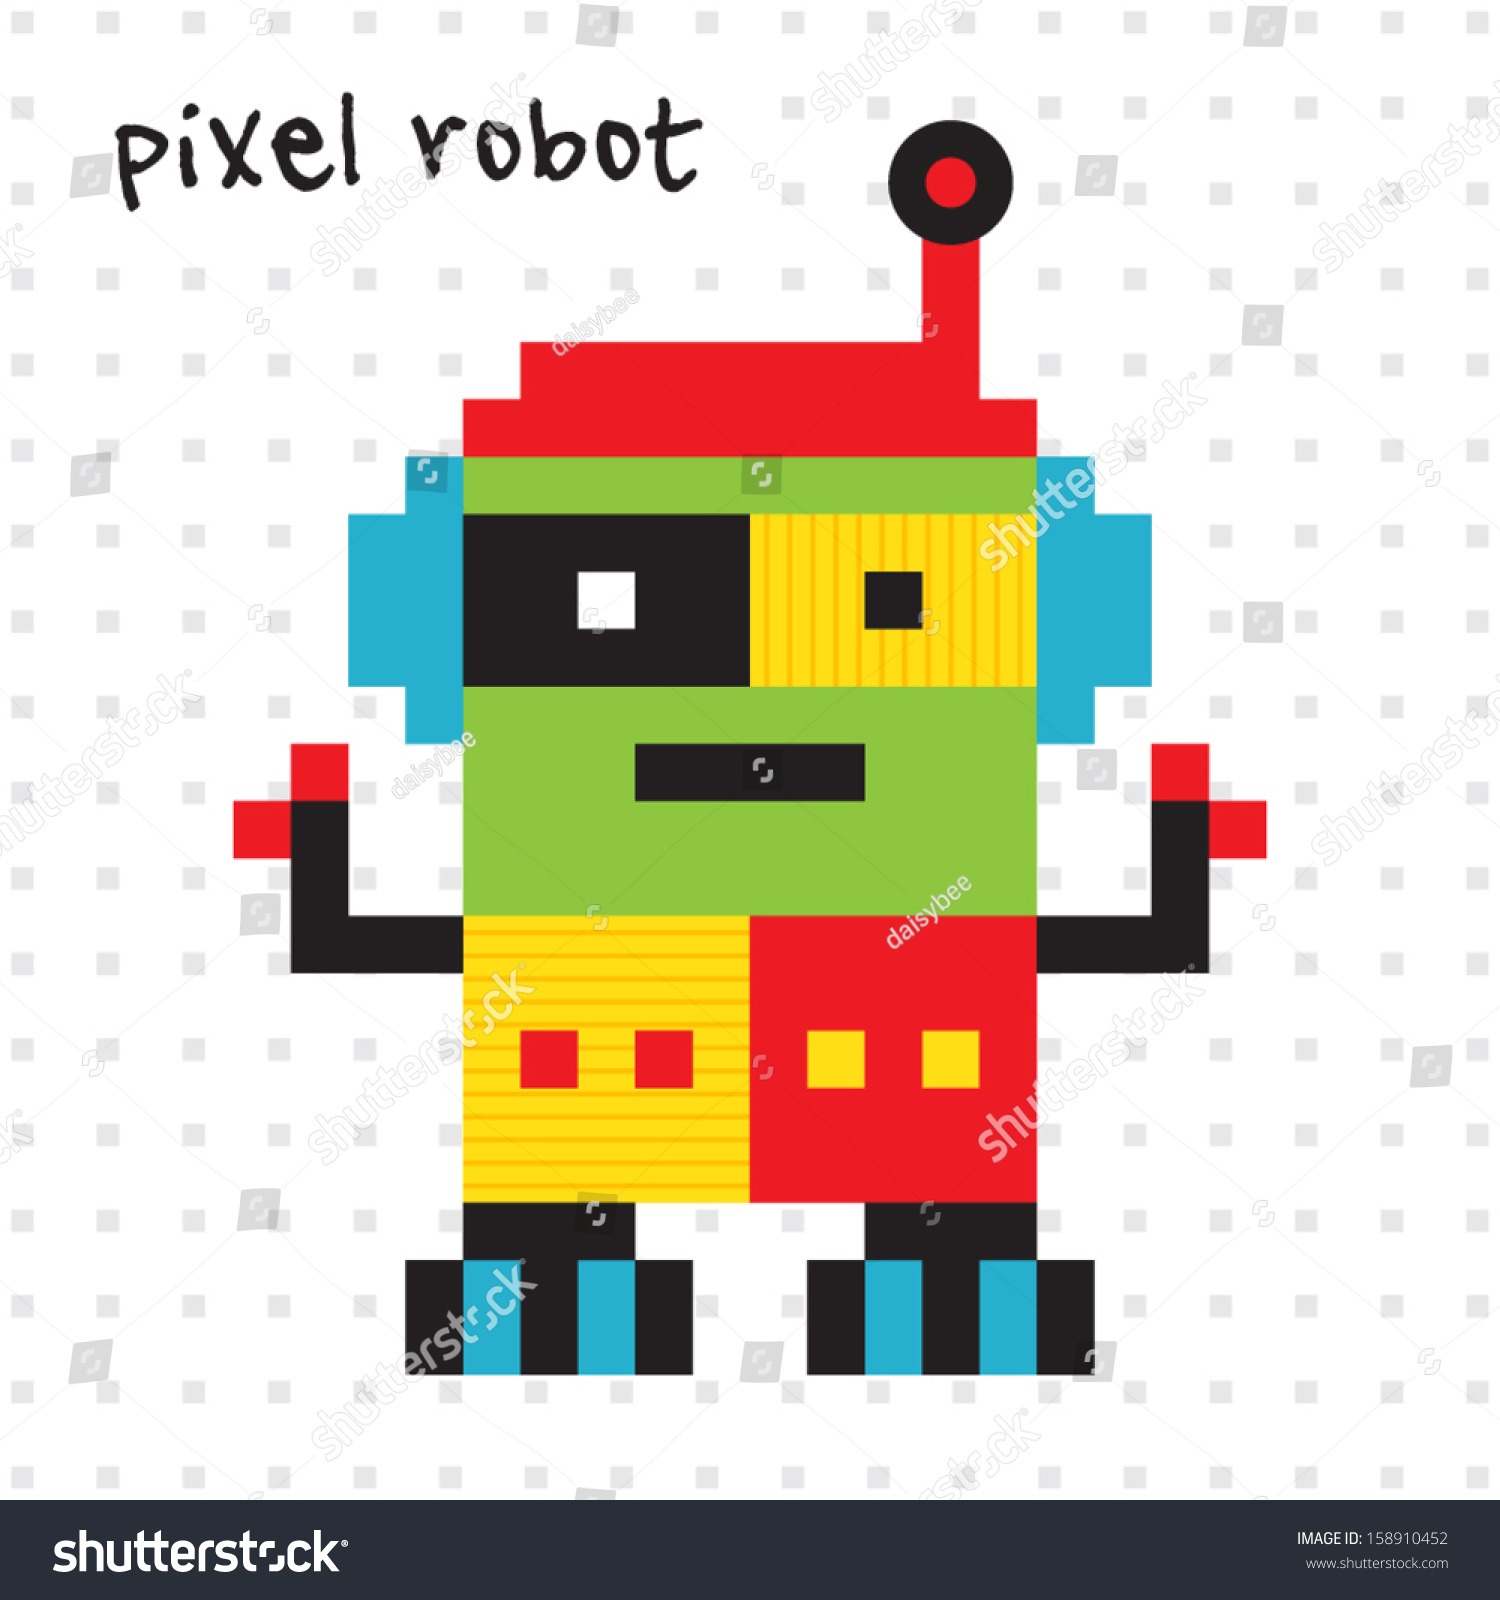 Cute retro pixel robot bright colors stock vector 158910452 cute retro pixel robot in bright colors great for birthday cards party invitations amipublicfo Gallery